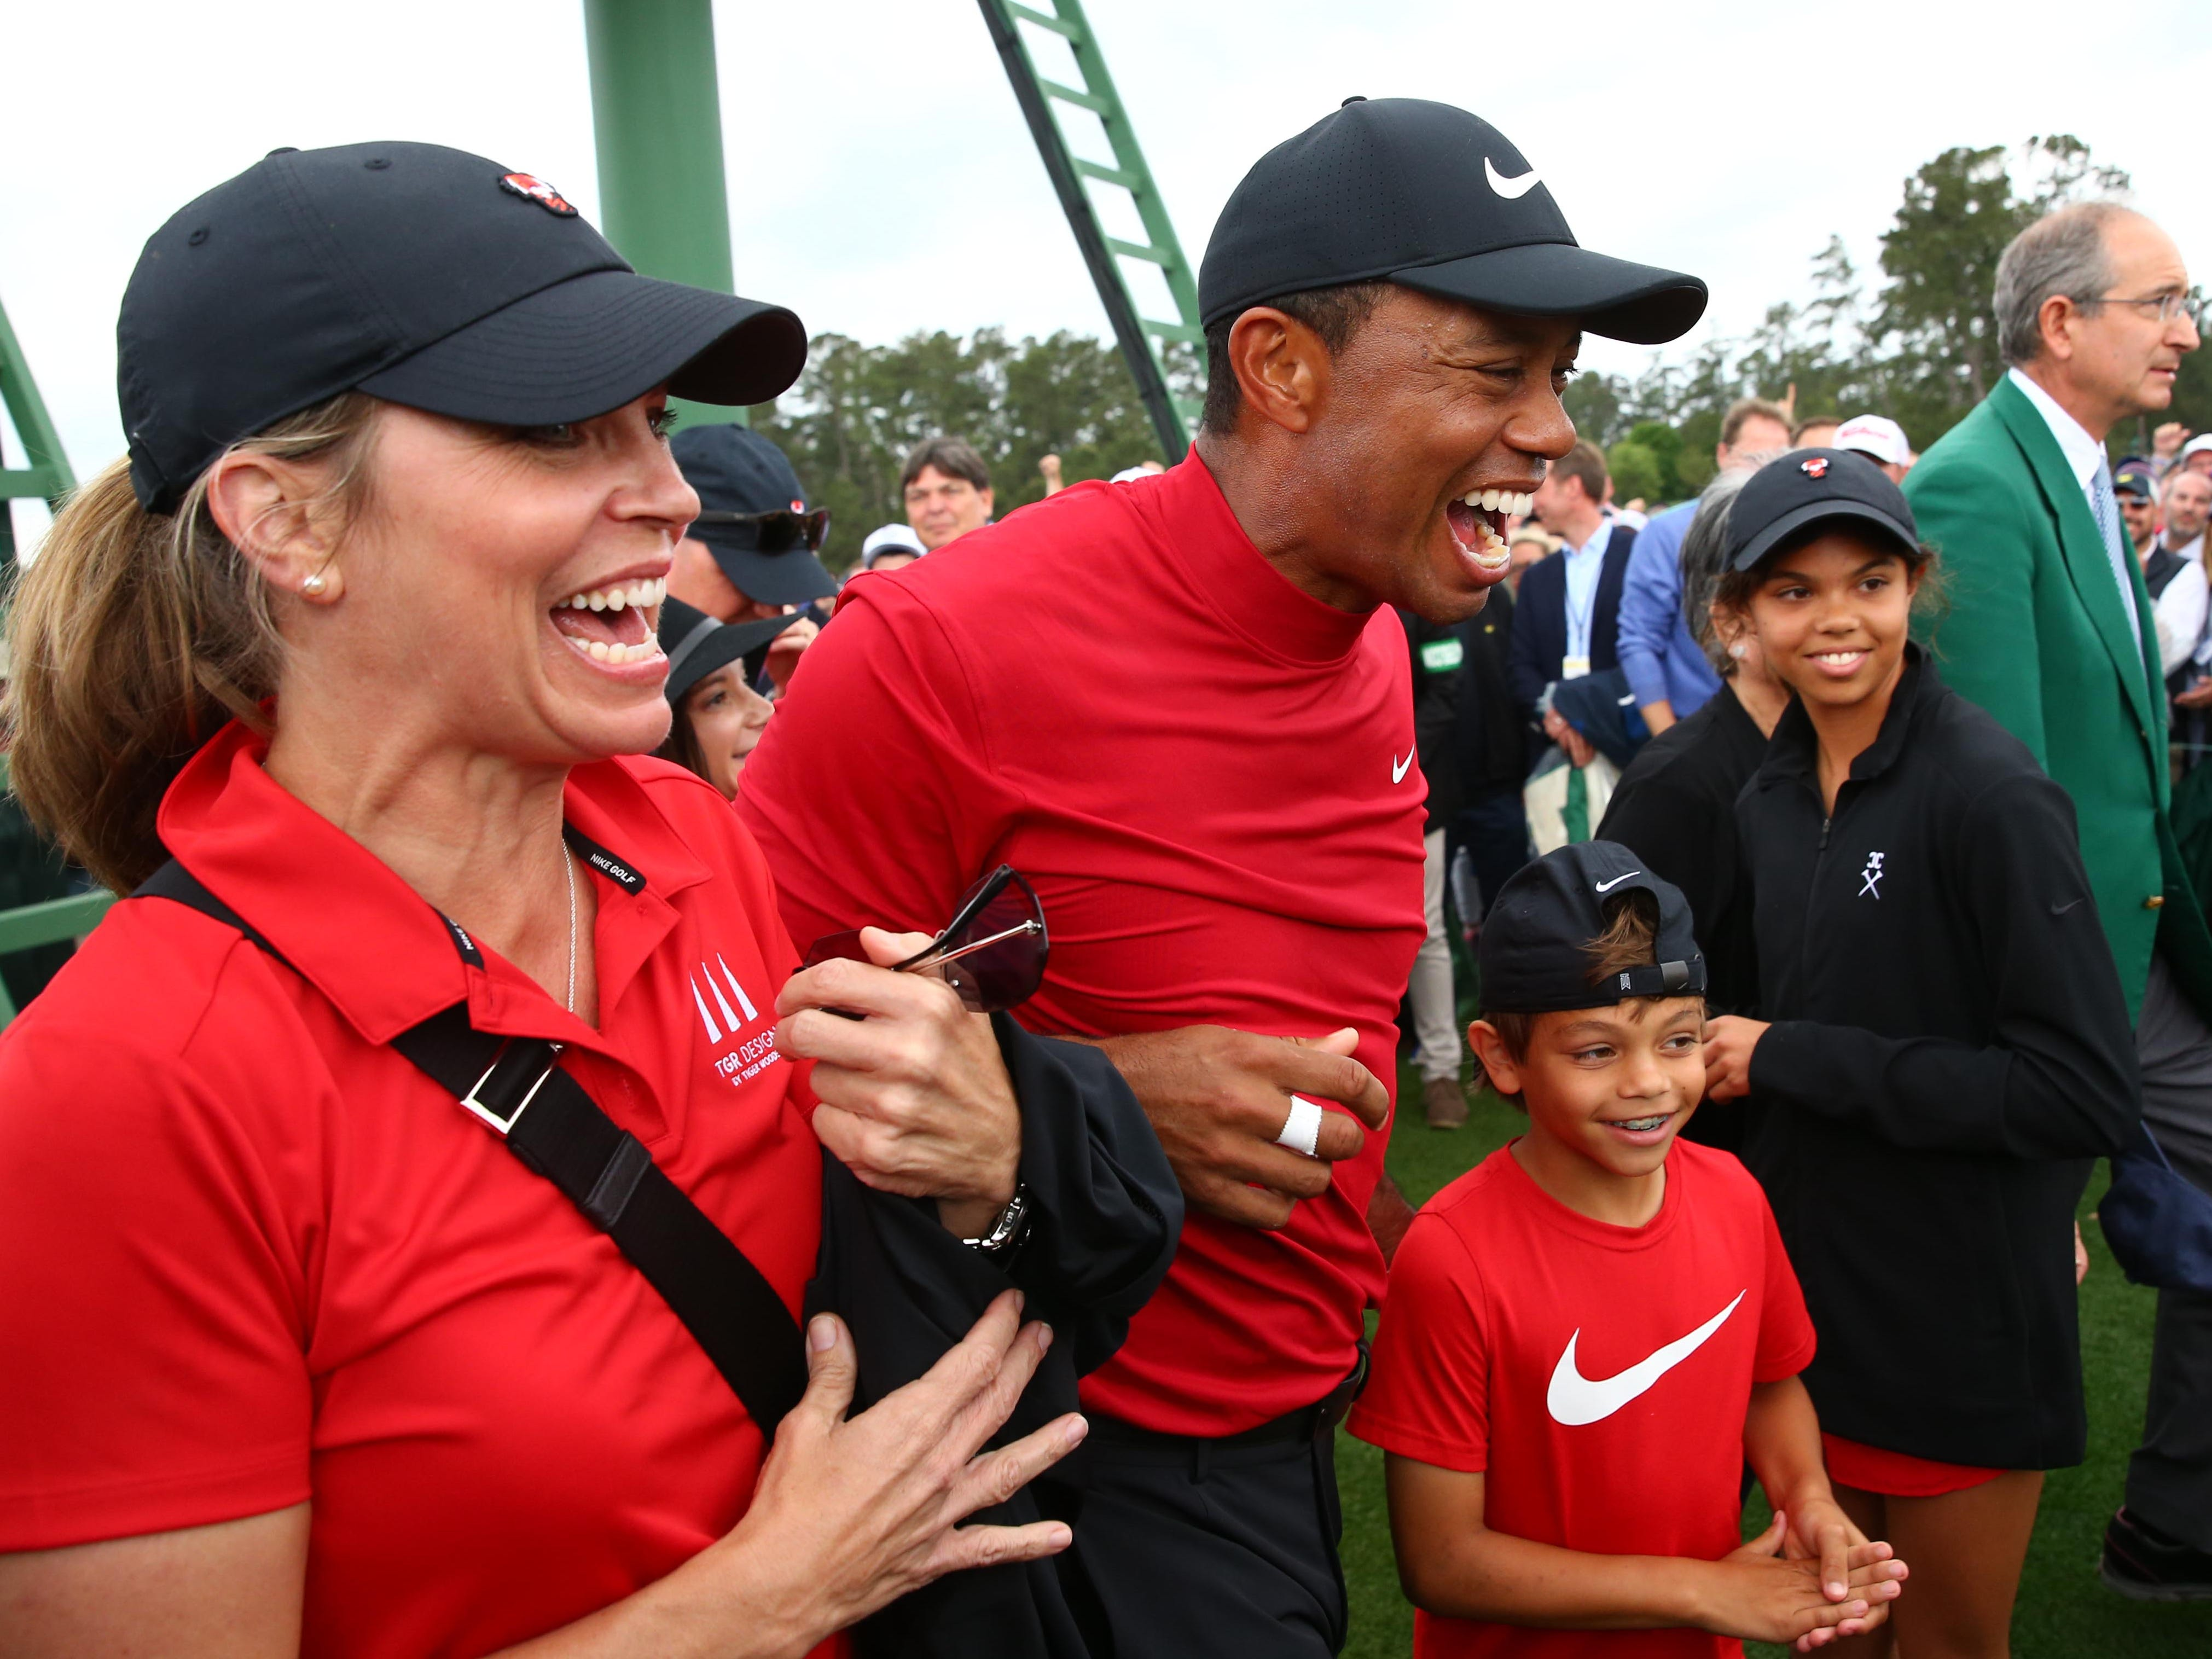 Apr 14, 2019; Augusta, GA, USA; Tiger Woods celebrates with daughter Sam and son Charlie after winning The Masters golf tournament at Augusta National Golf Club. Mandatory Credit: Rob Schumacher-USA TODAY Sports ORG XMIT: USATSI-389786 ORIG FILE ID:  20190414_jla_usa_274.jpg